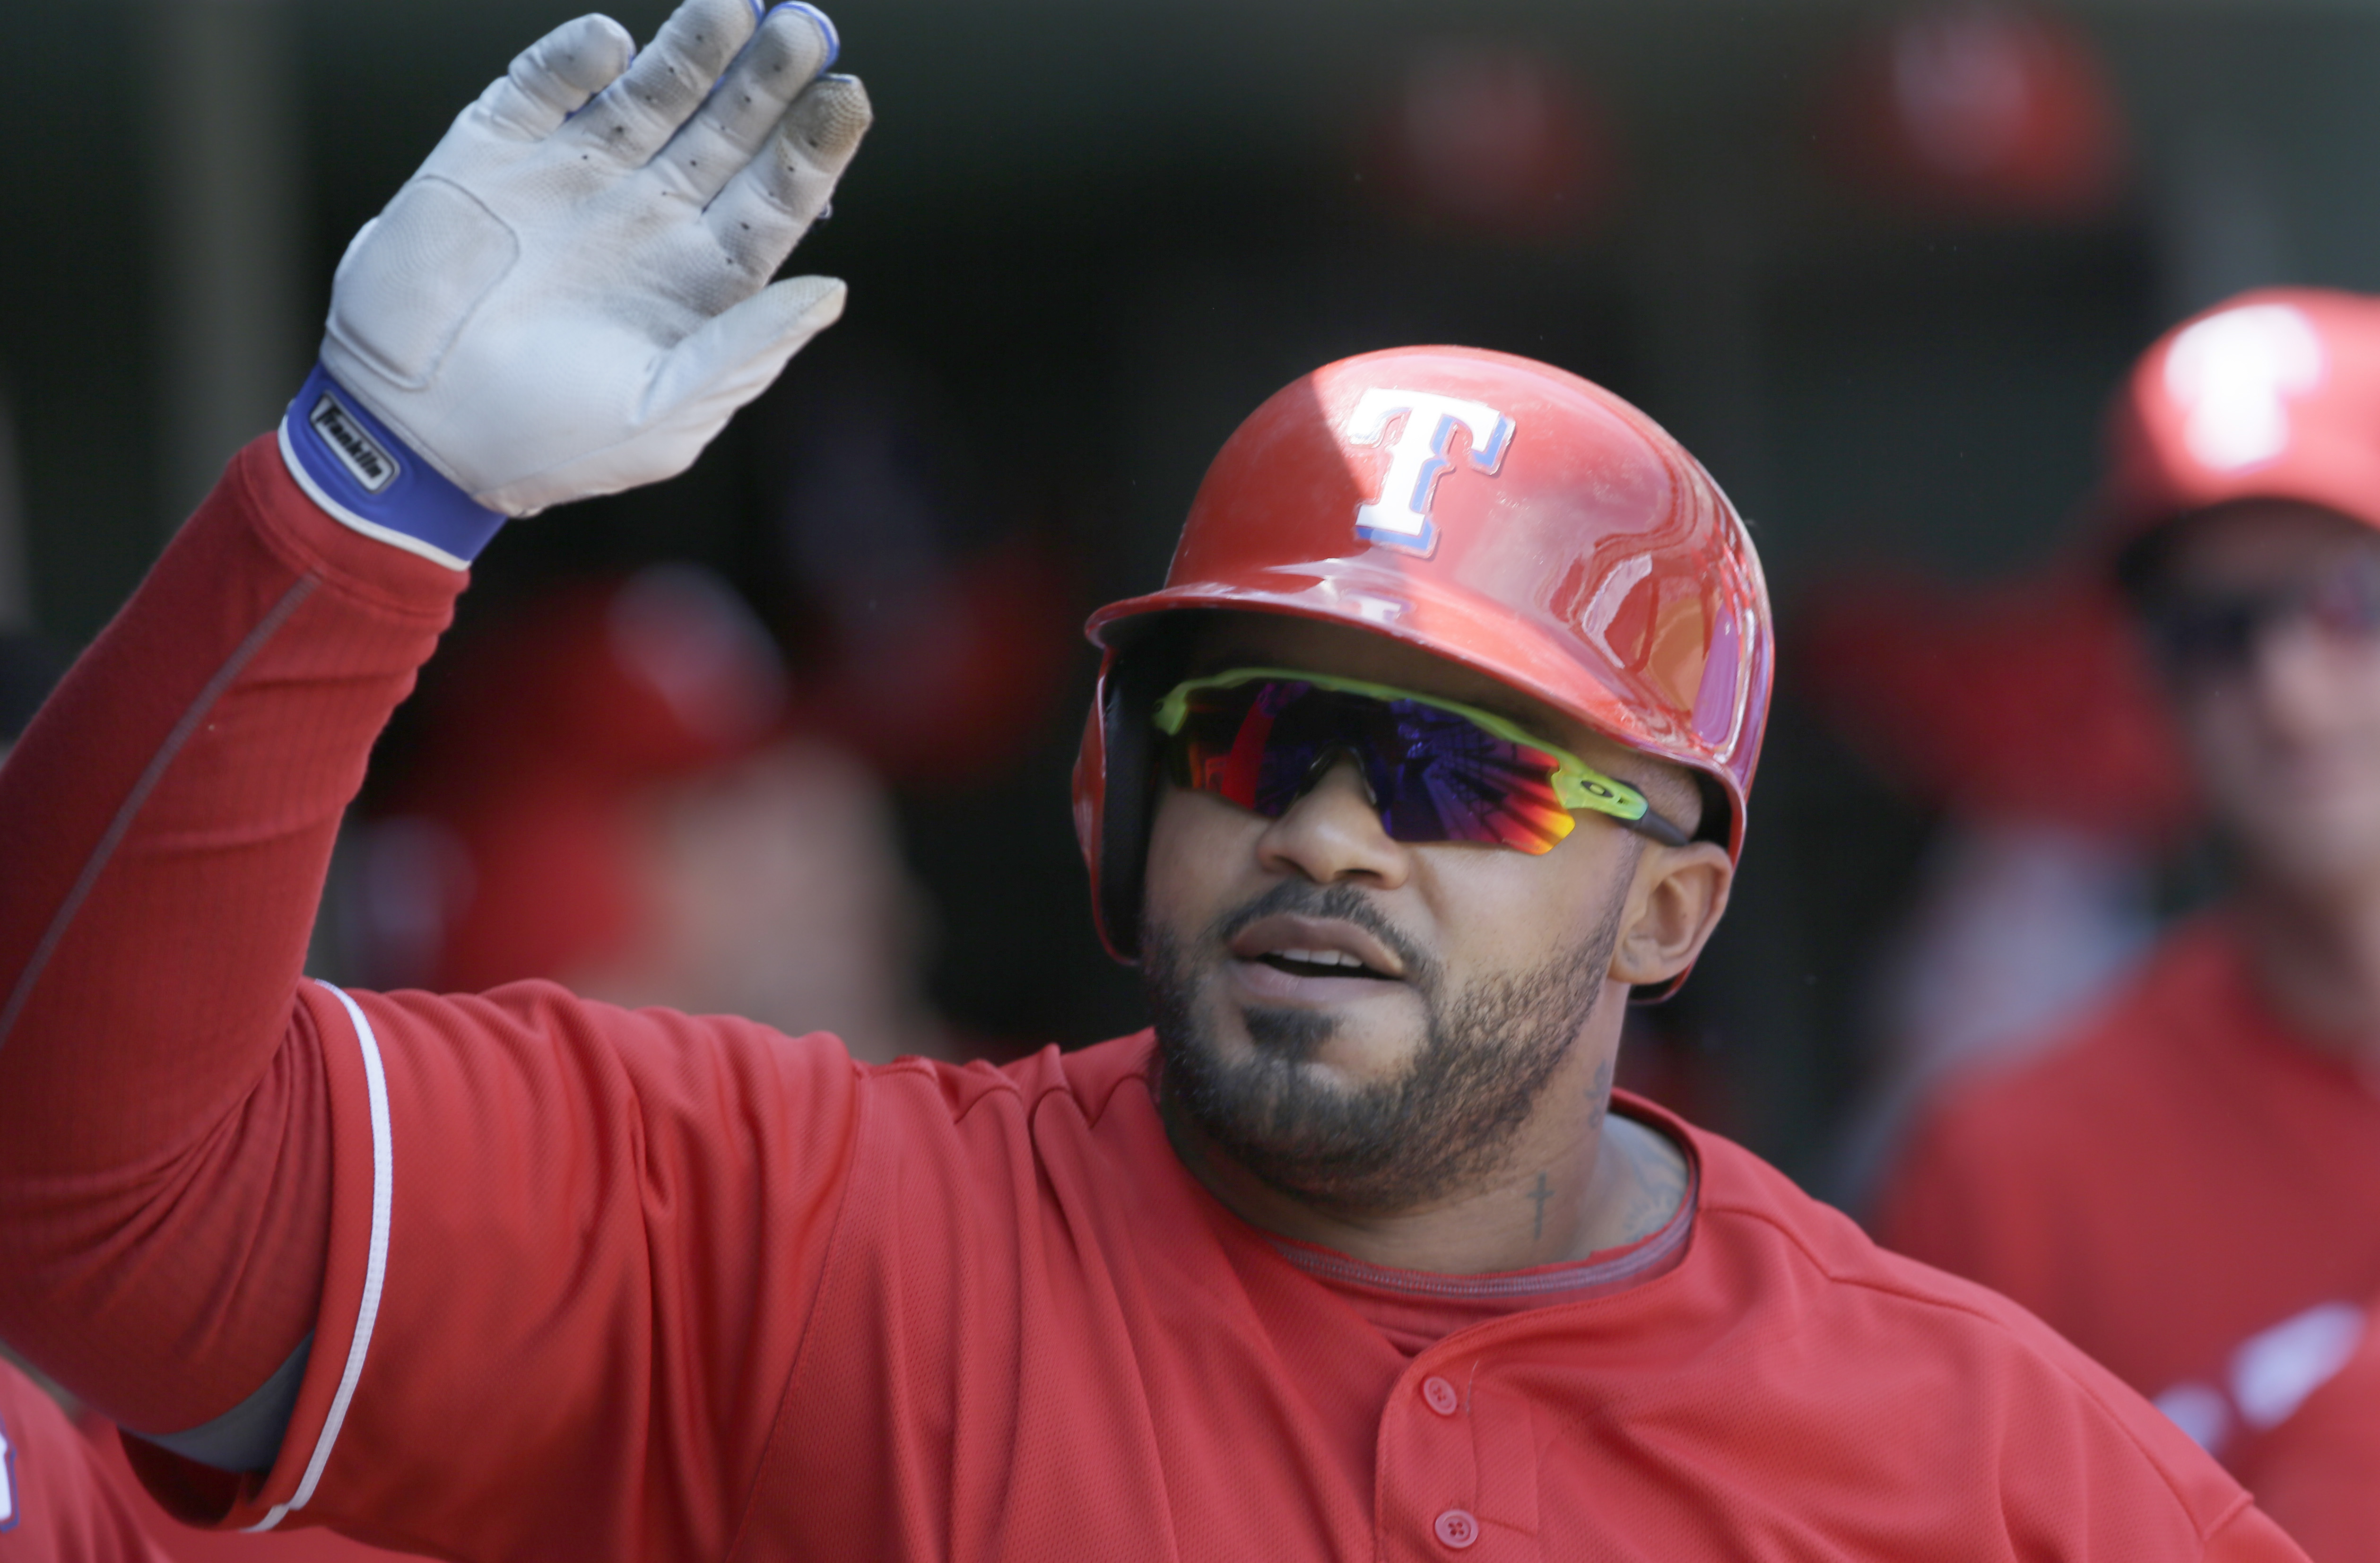 Texas Rangers designated hitter Prince Fielder celebrates his solo home run during the fourth inning of a baseball game against the Pittsburgh Pirates in Arlington, Texas, Sunday, May 29, 2016. (AP Photo/LM Otero)